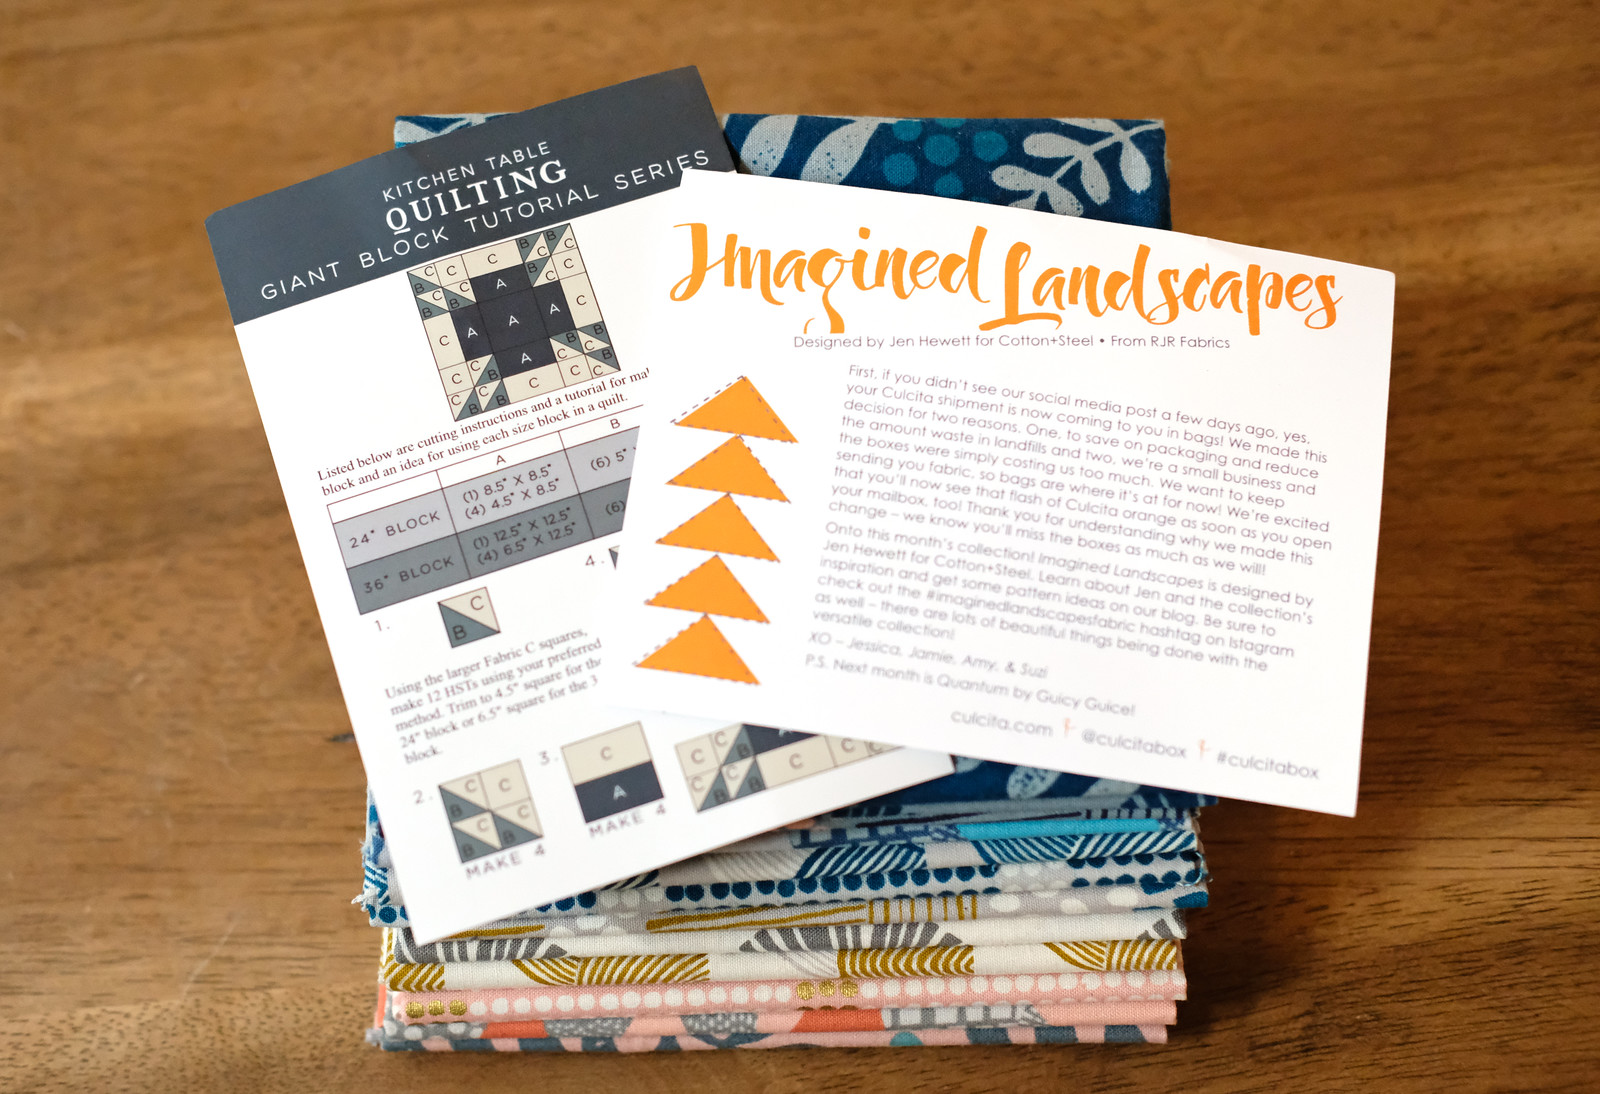 November Culcita Box Unboxing - Kitchen Table Quilting